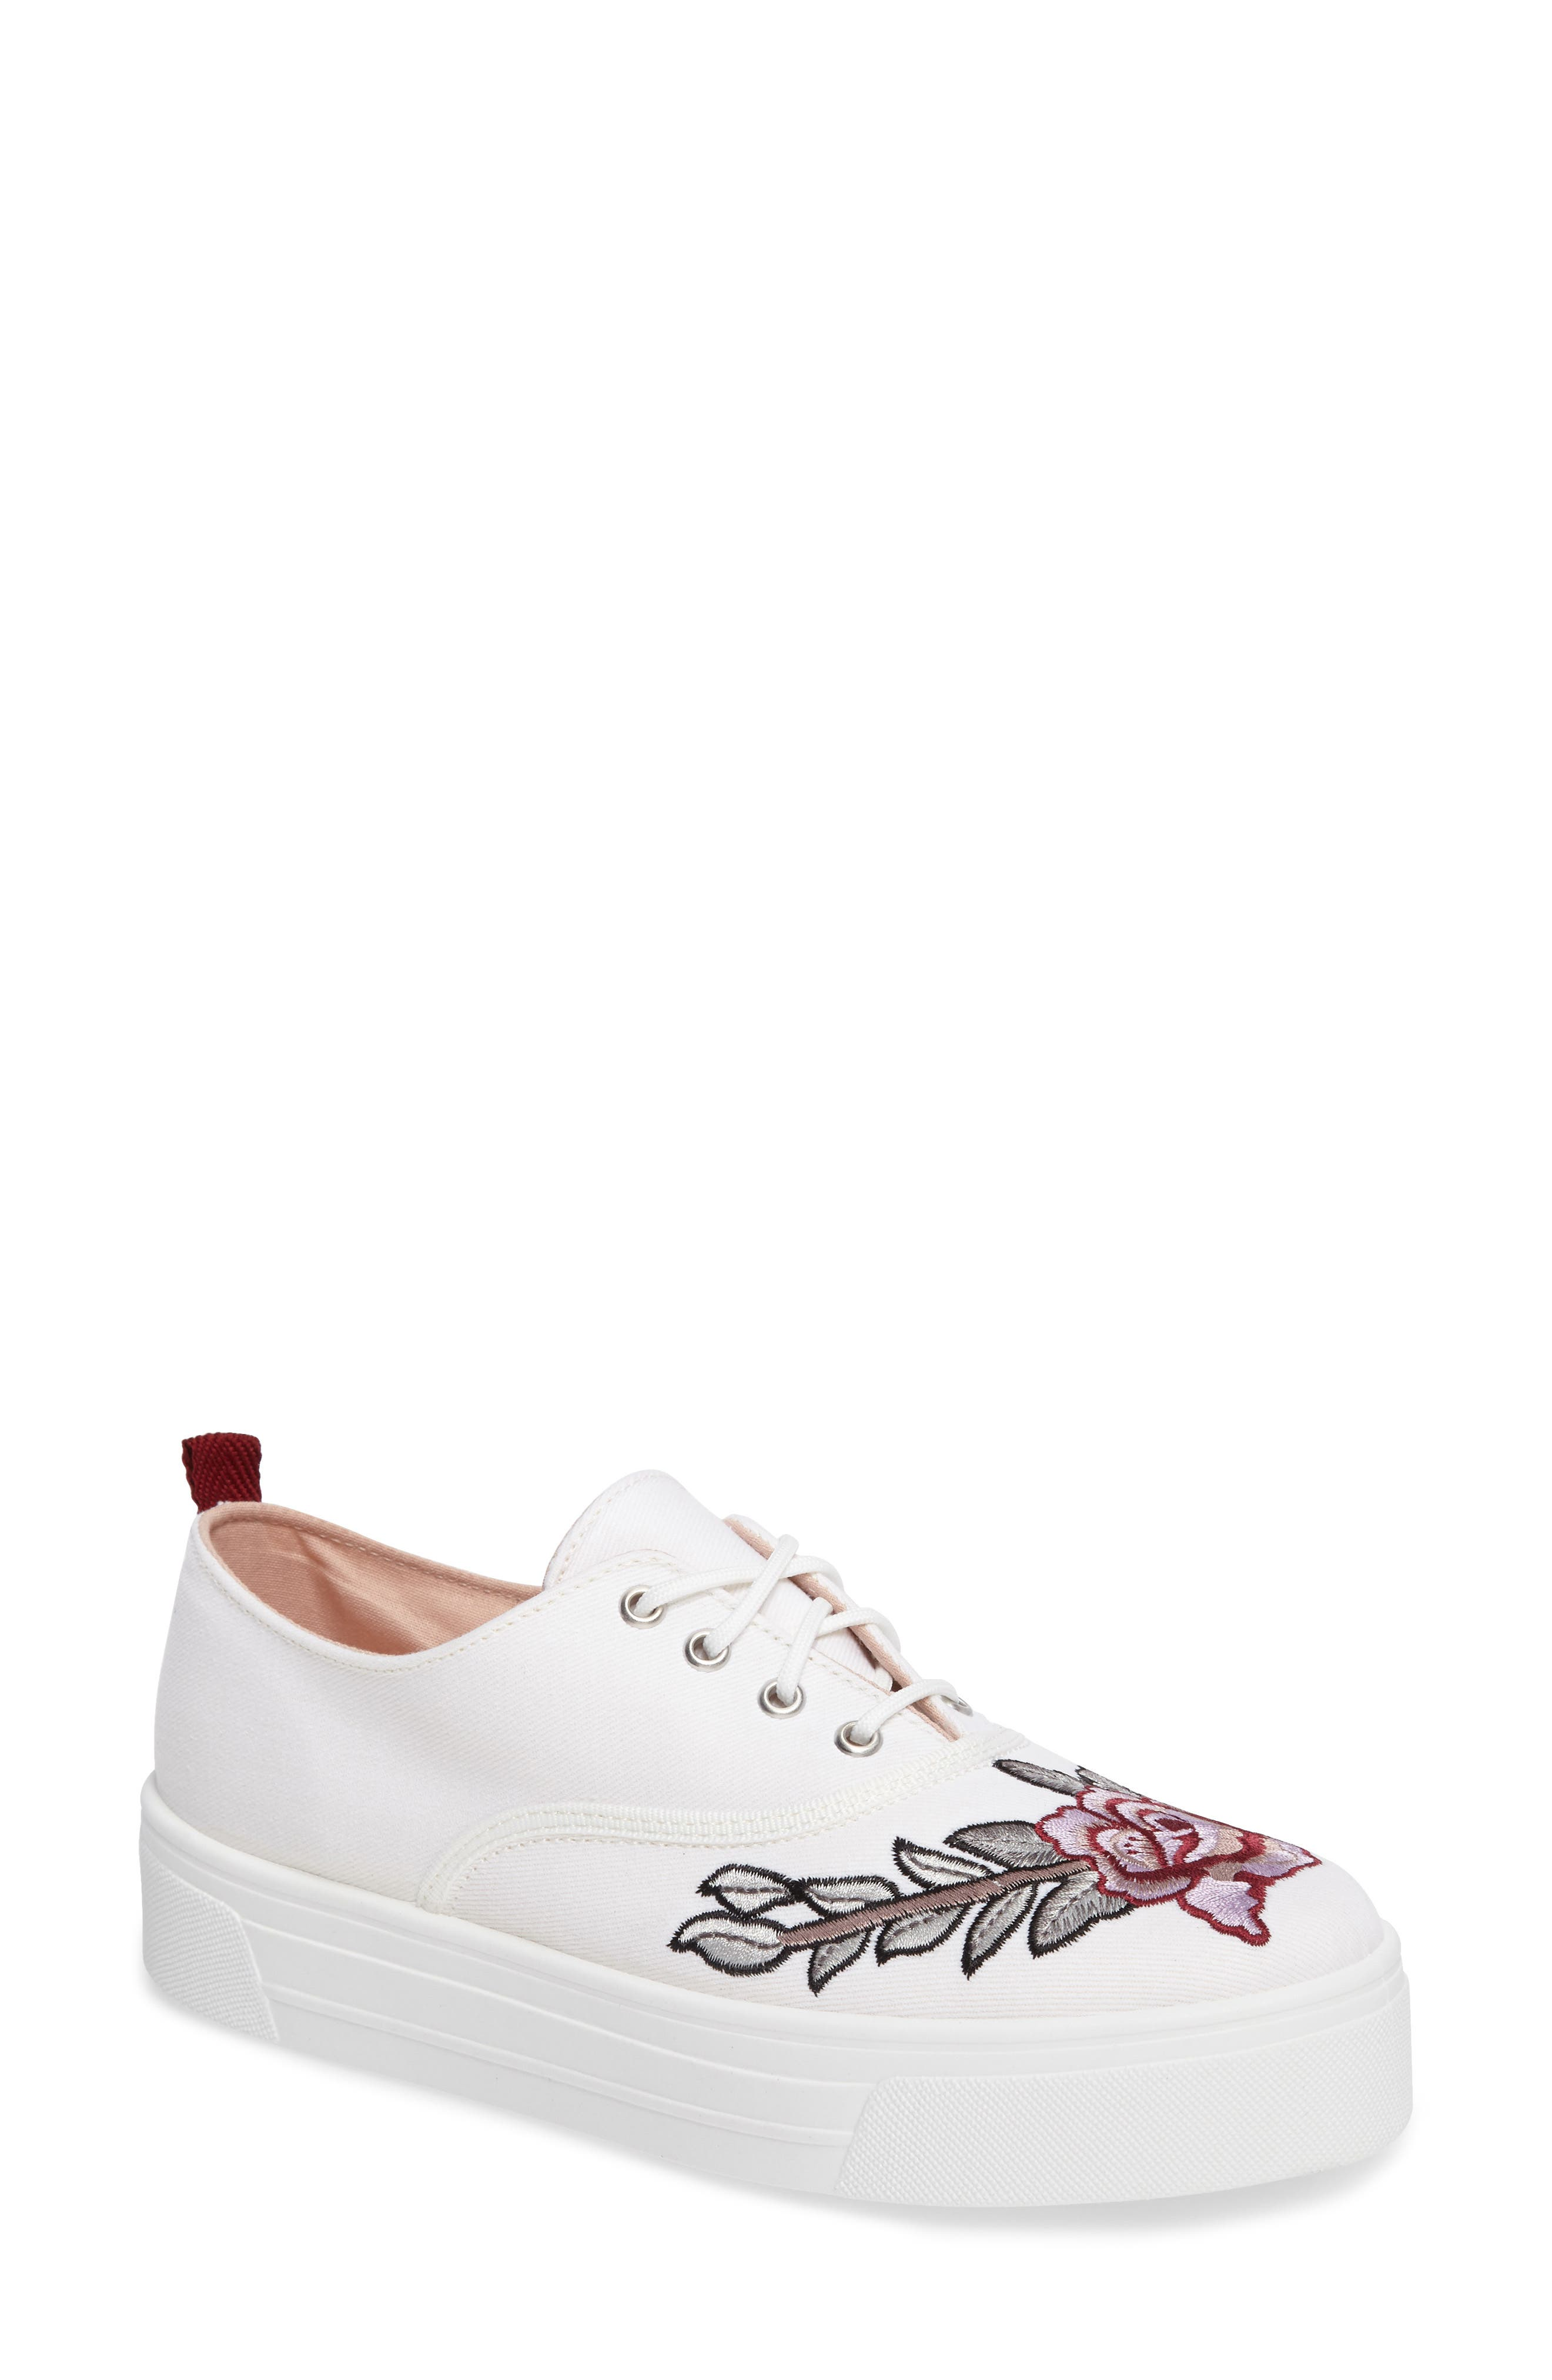 Topshop College Embroidered Flatform Sneaker (Women)